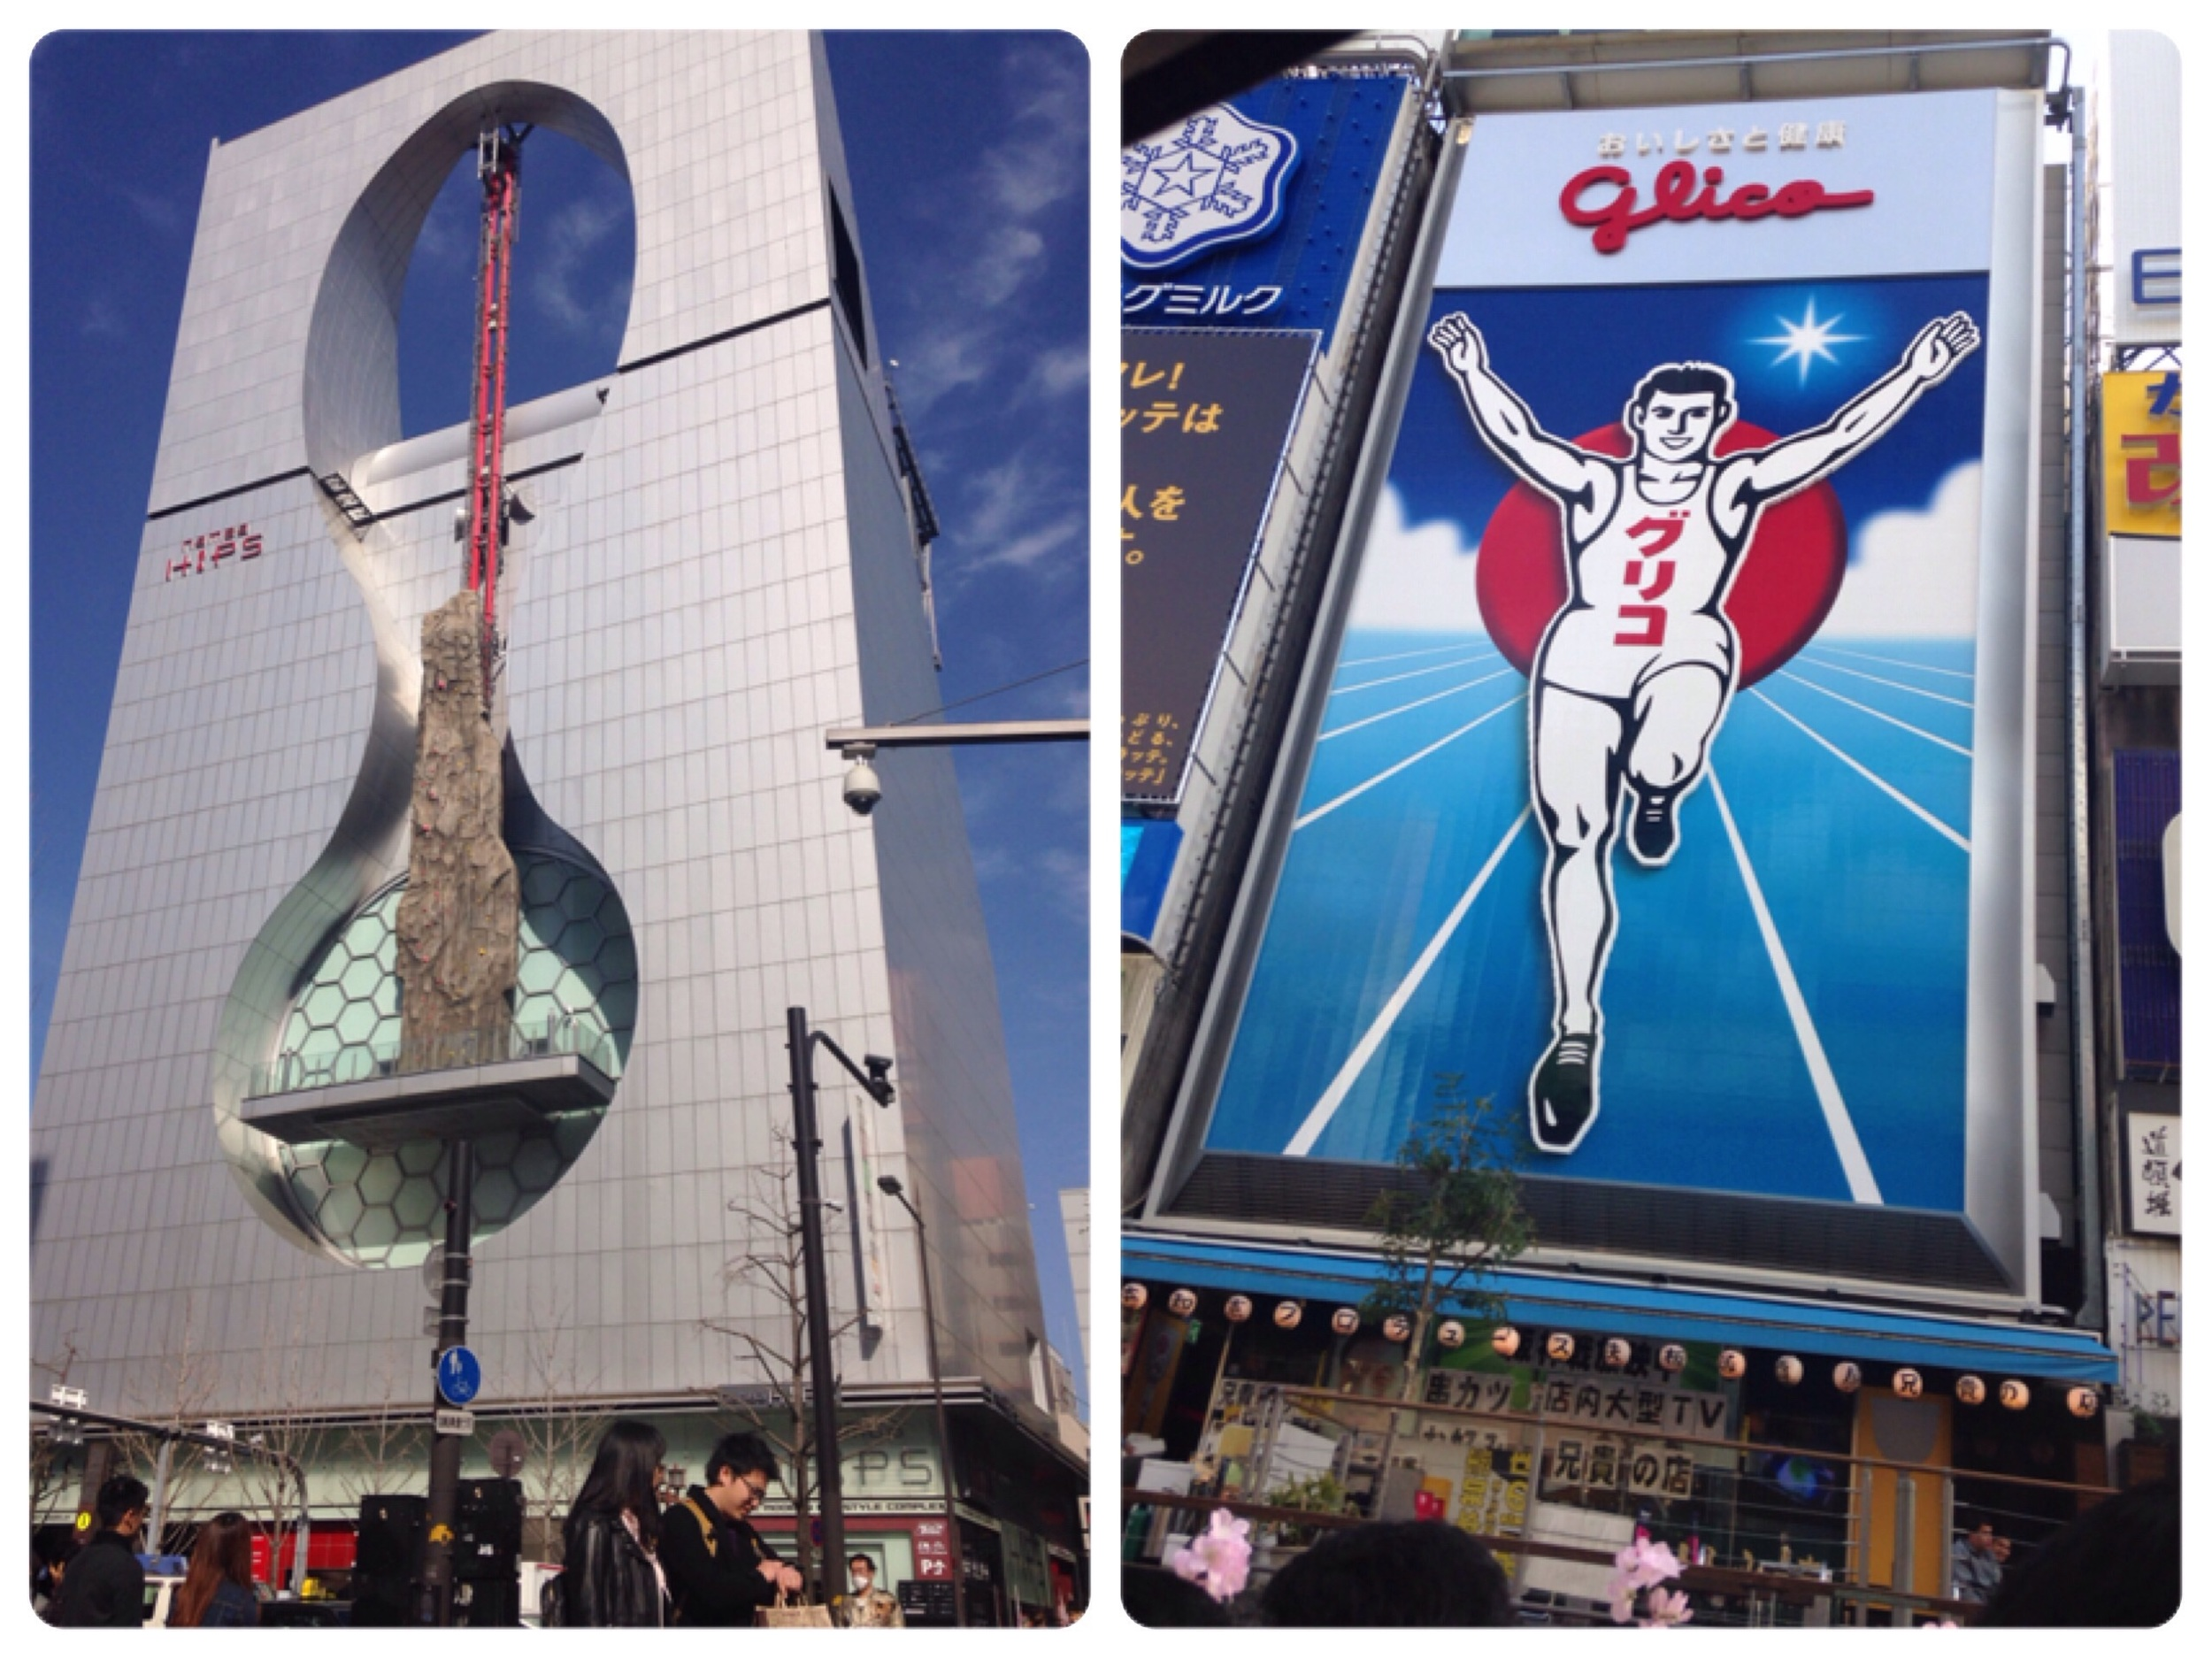 LINDSEY!! Check out the climbing wall in the middle of the building in the city! I wish I could climb it with you!   As for the Glico running man, no one really knows the history, but Glico is the company who makes Pocky.